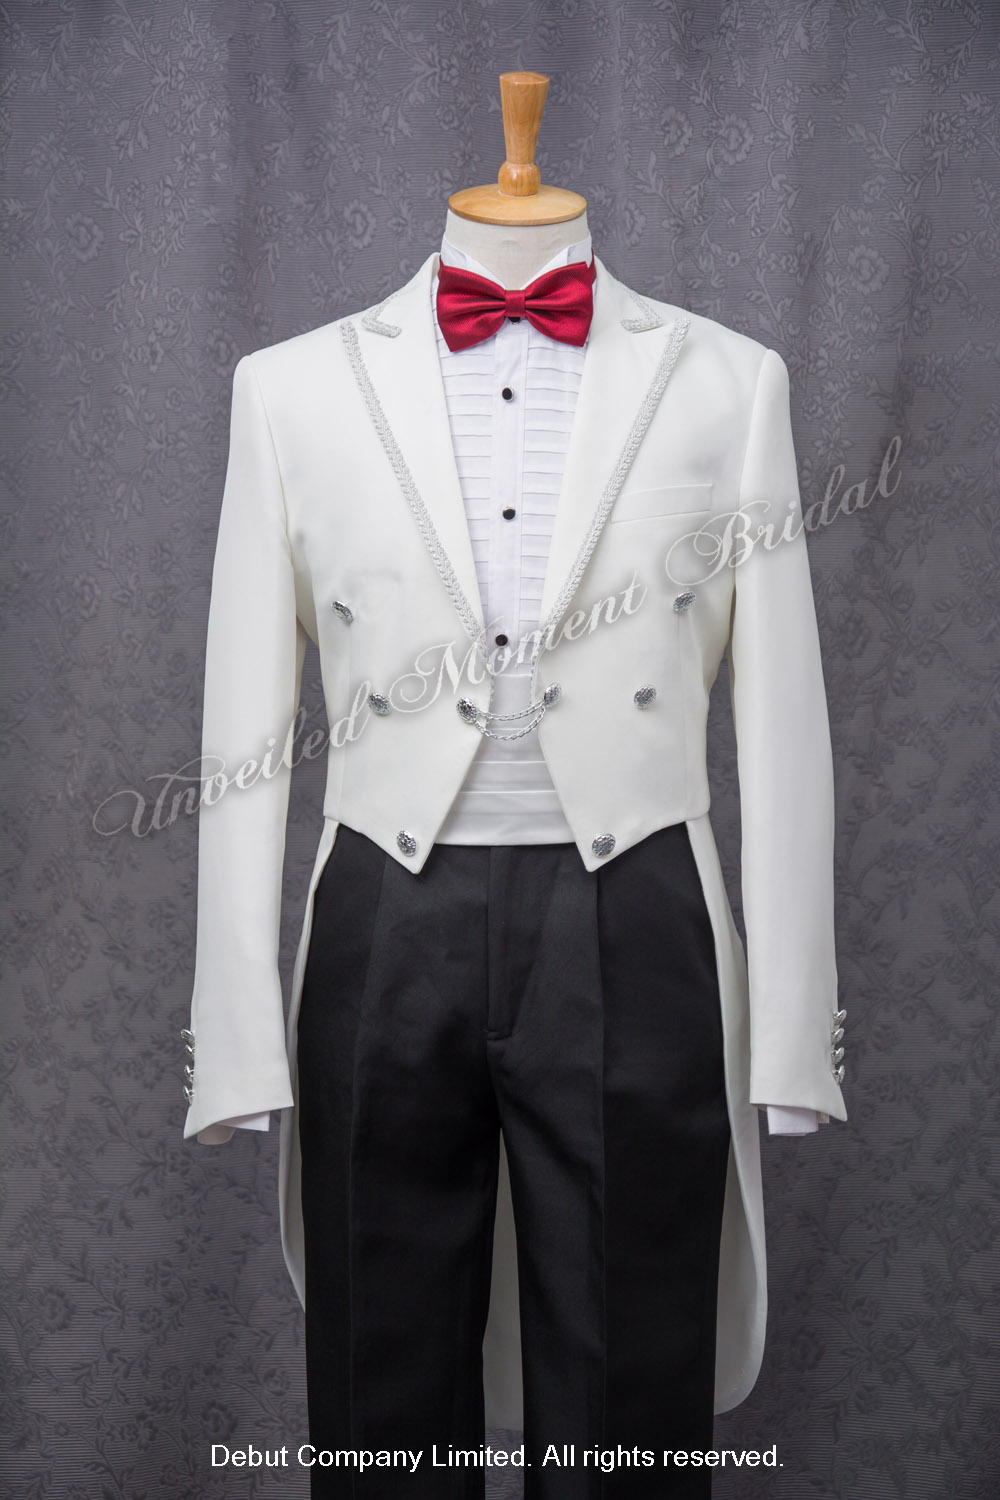 Peak-lapel collar white tuxedo with silver trim and buttons, matched with white cummerband and red bow tie 紅色領結, 白色腰封, 銀邊縫飾, 前短後長燕尾白色新郎禮服